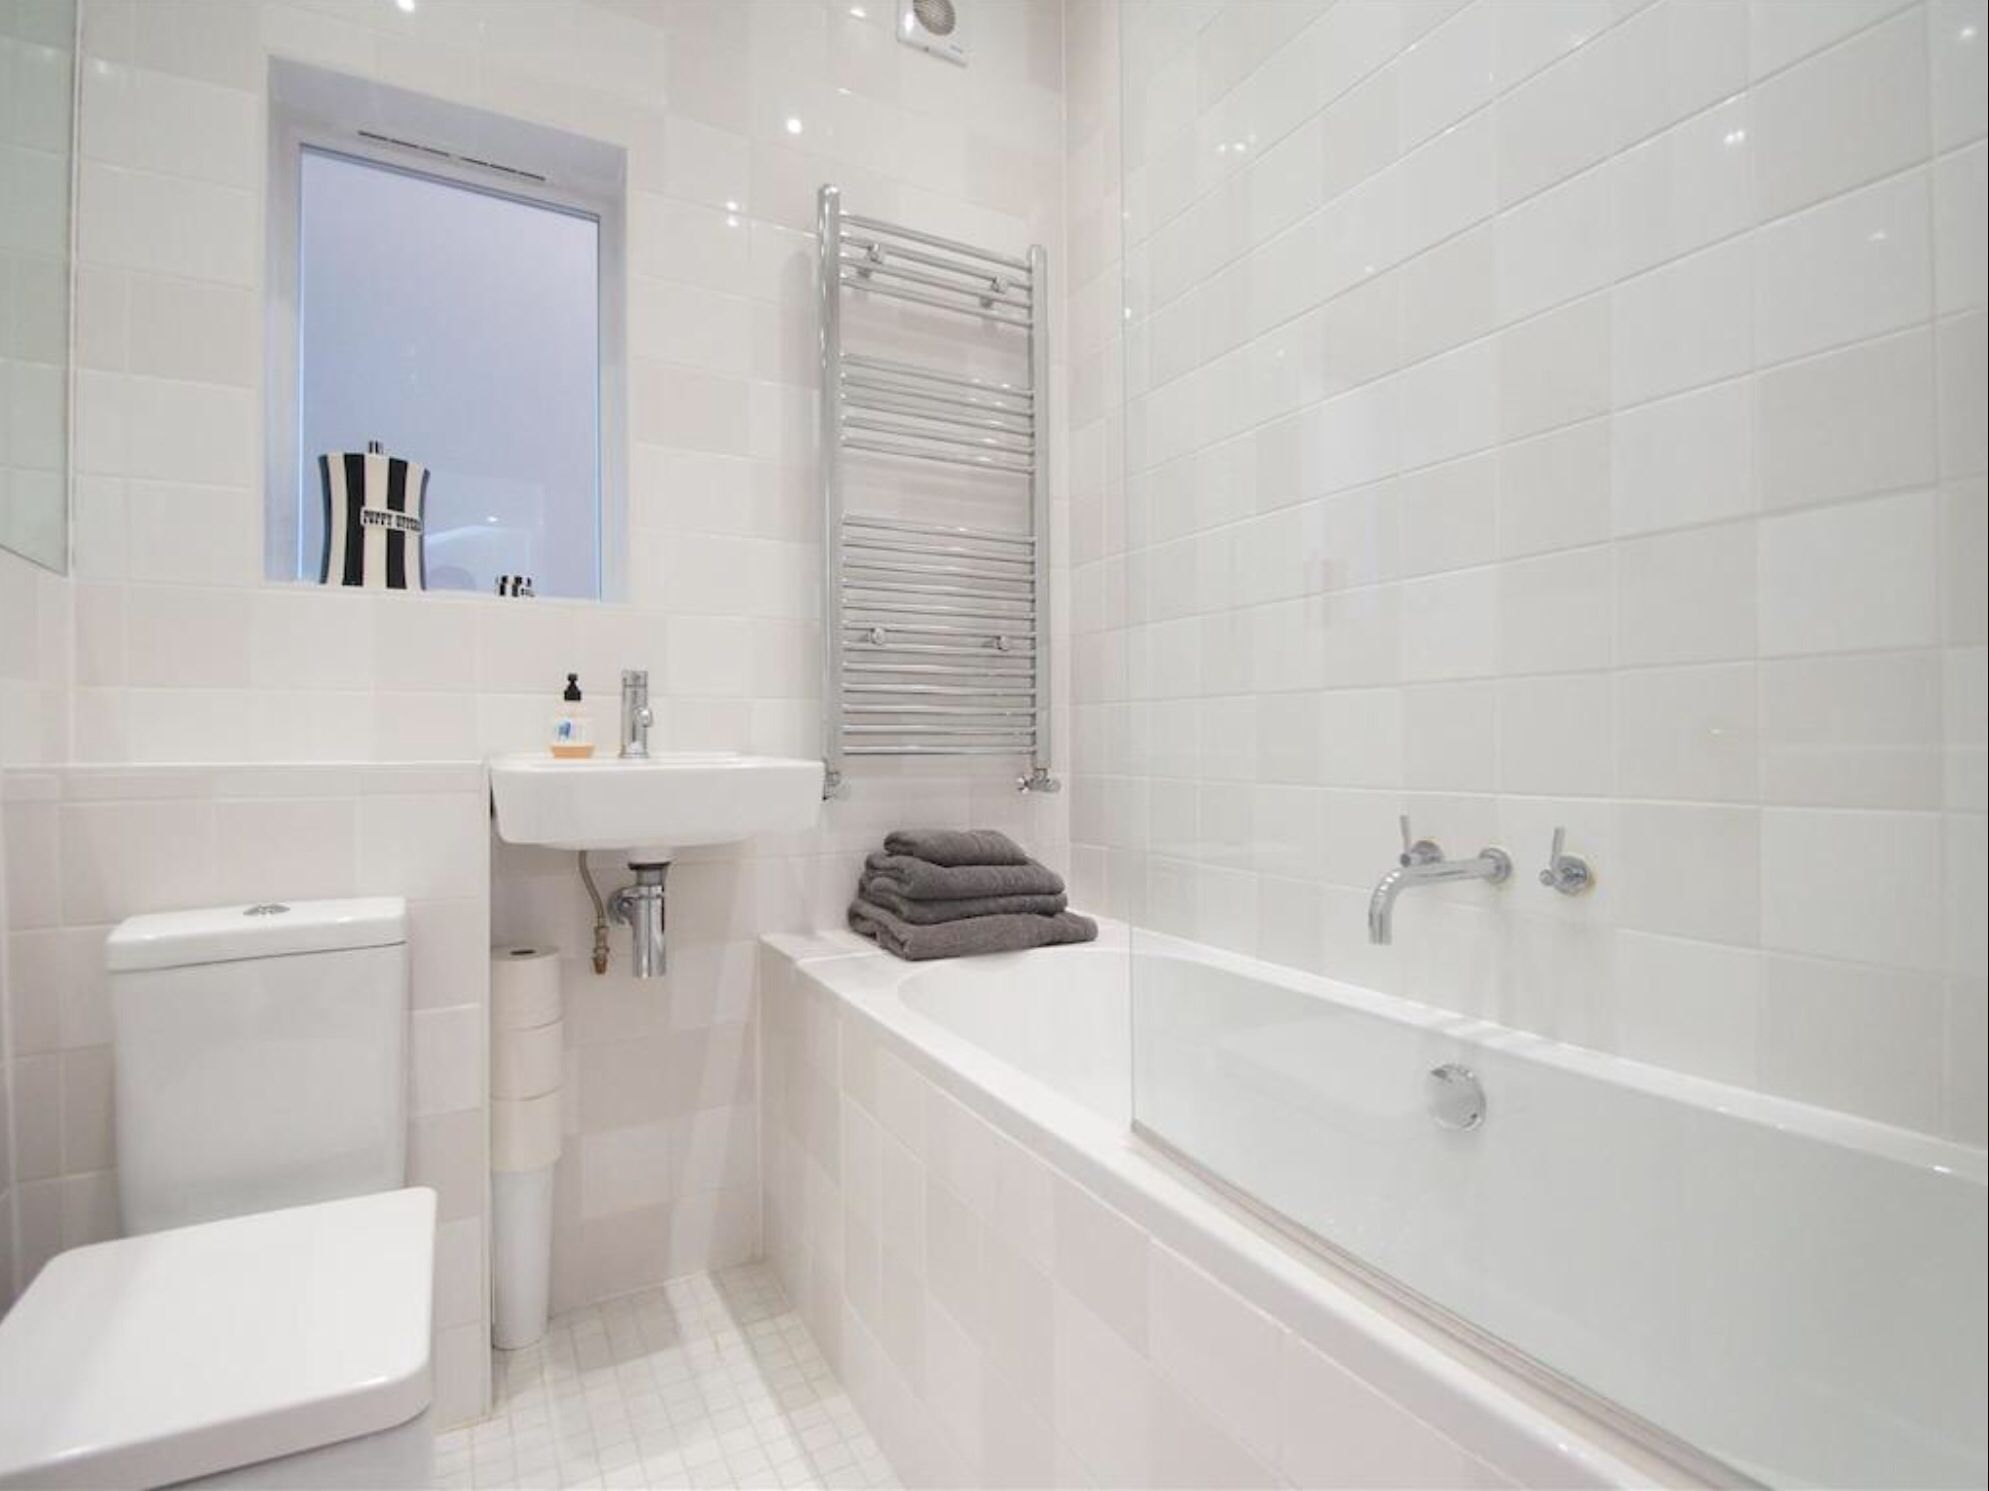 Radiator Badezimmer ~ Could have radiator above bath like this boys bathroom